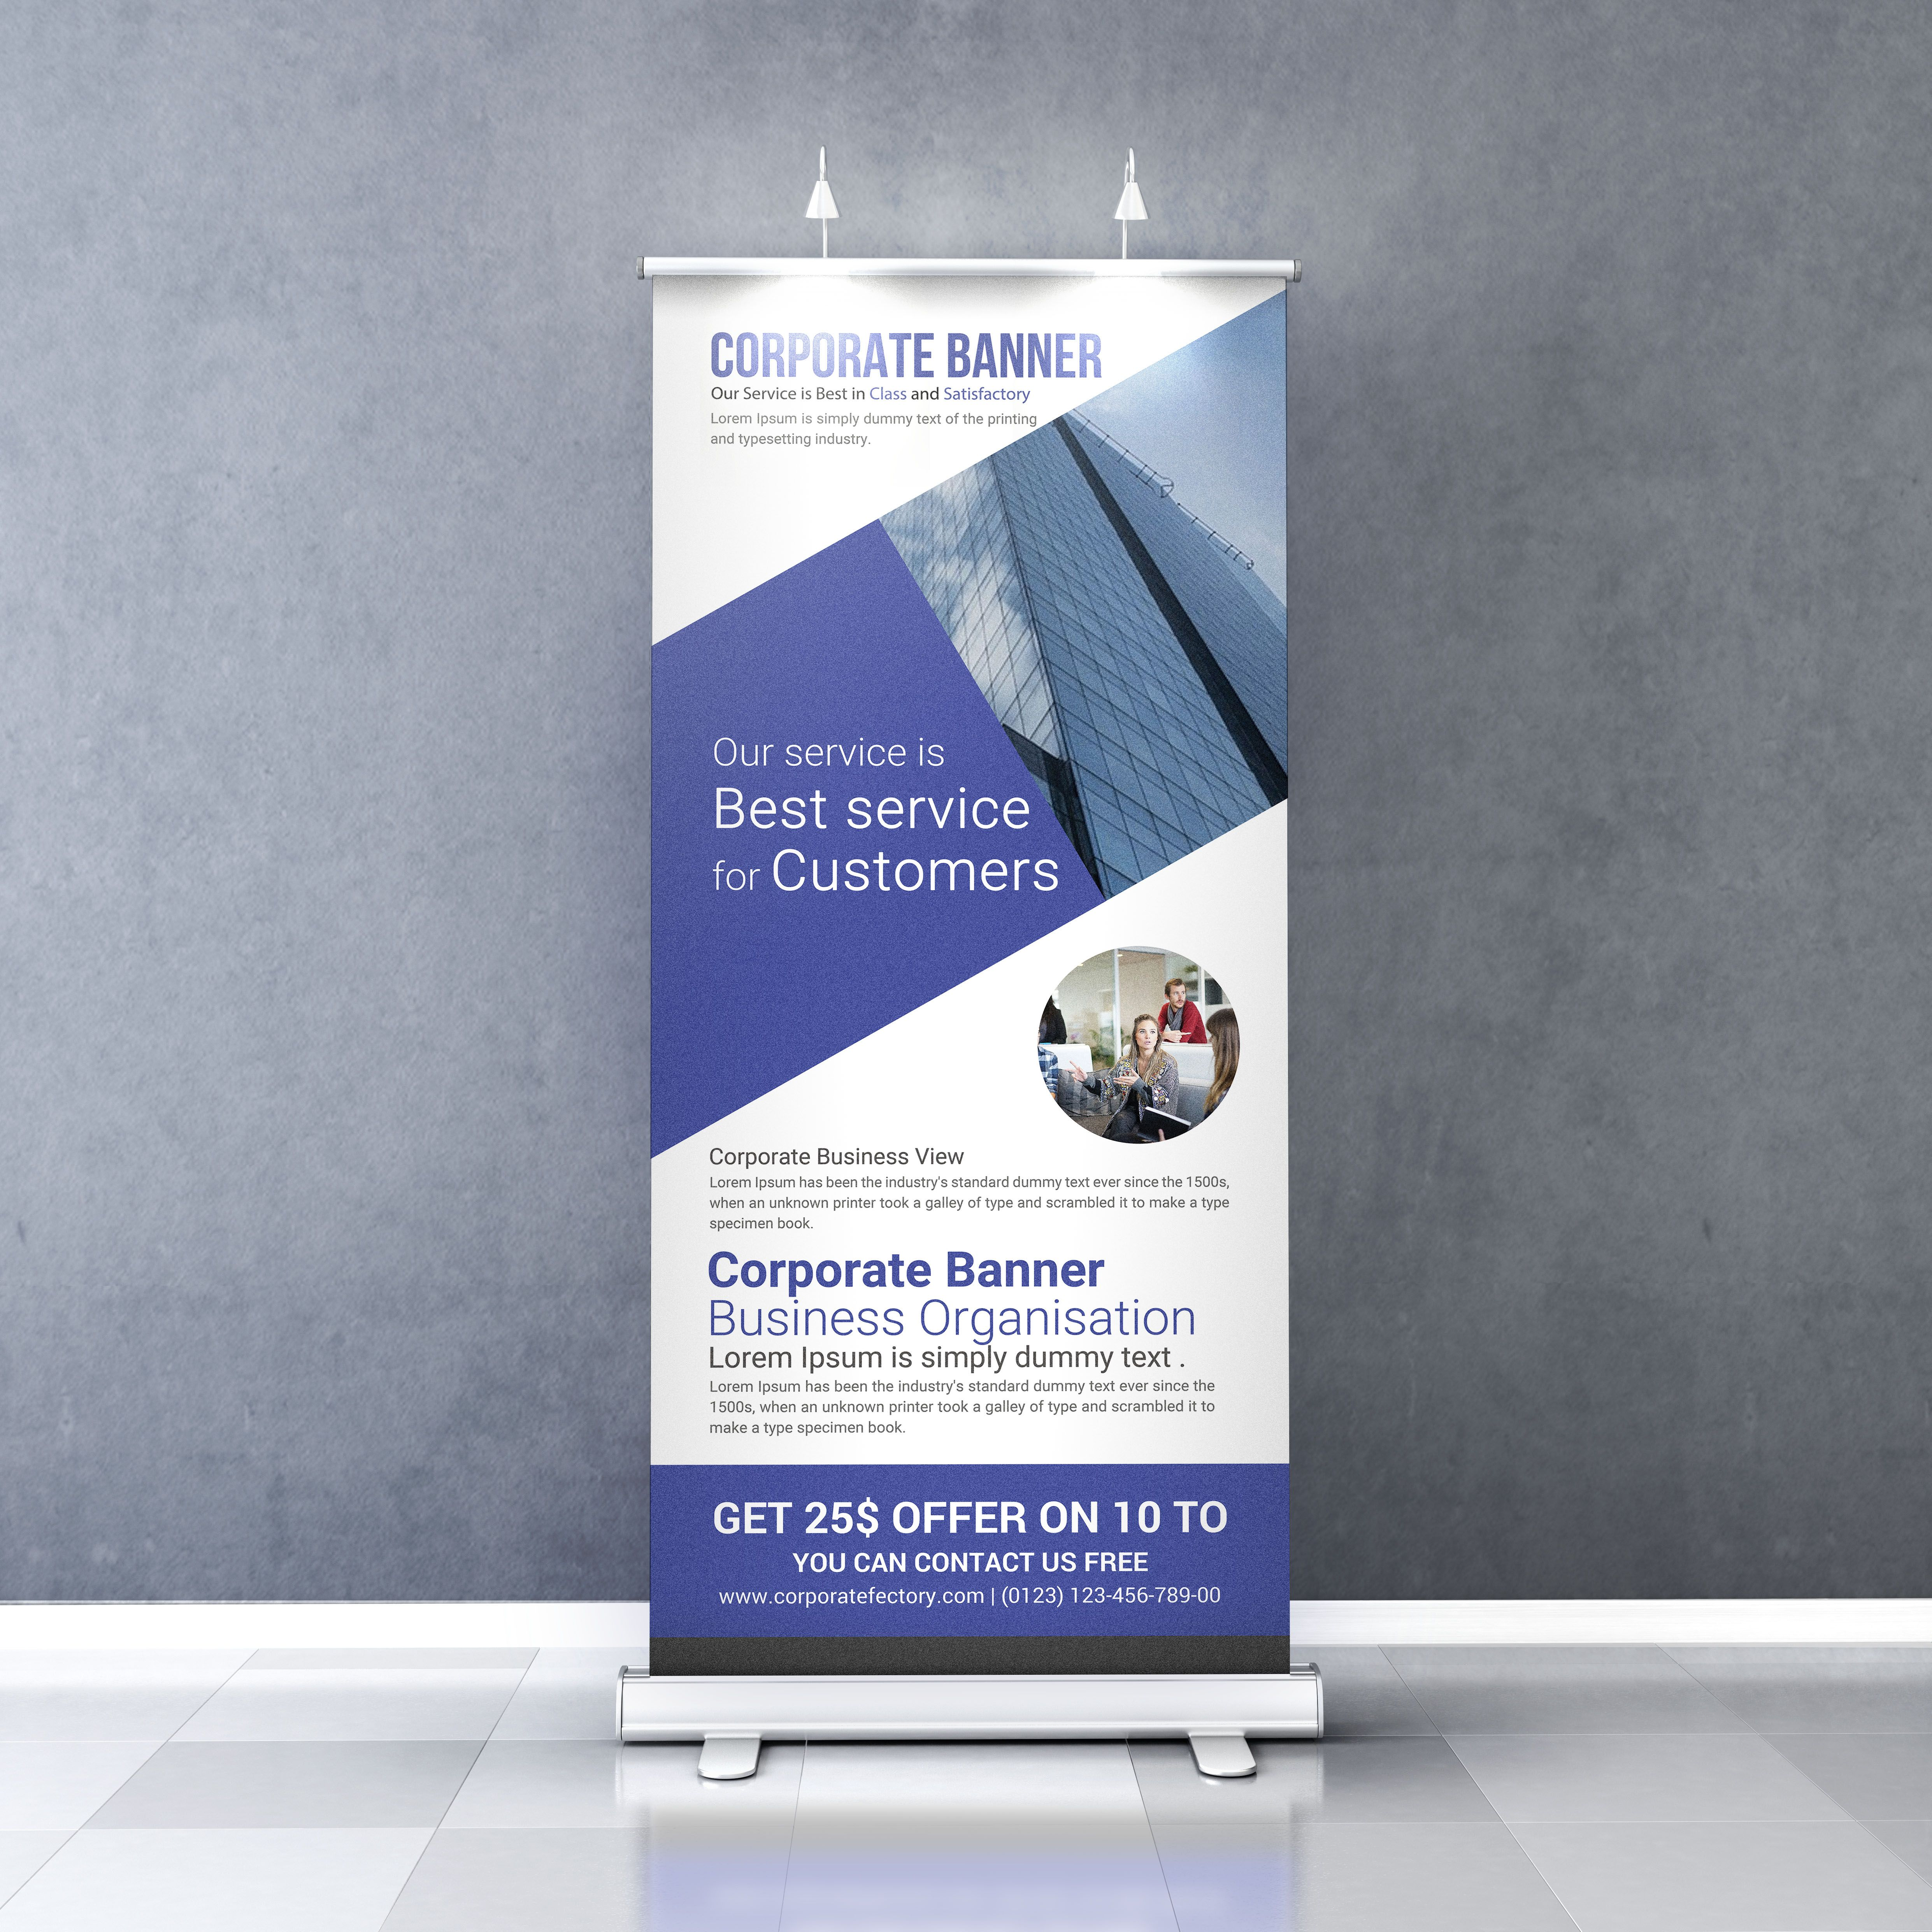 Free Corporate Roll Up Banner Template Banner Bannerpsd Banner Template Download Psd Roll Upbanner Rollup Banner Template Corporate Banner Rollup Banner